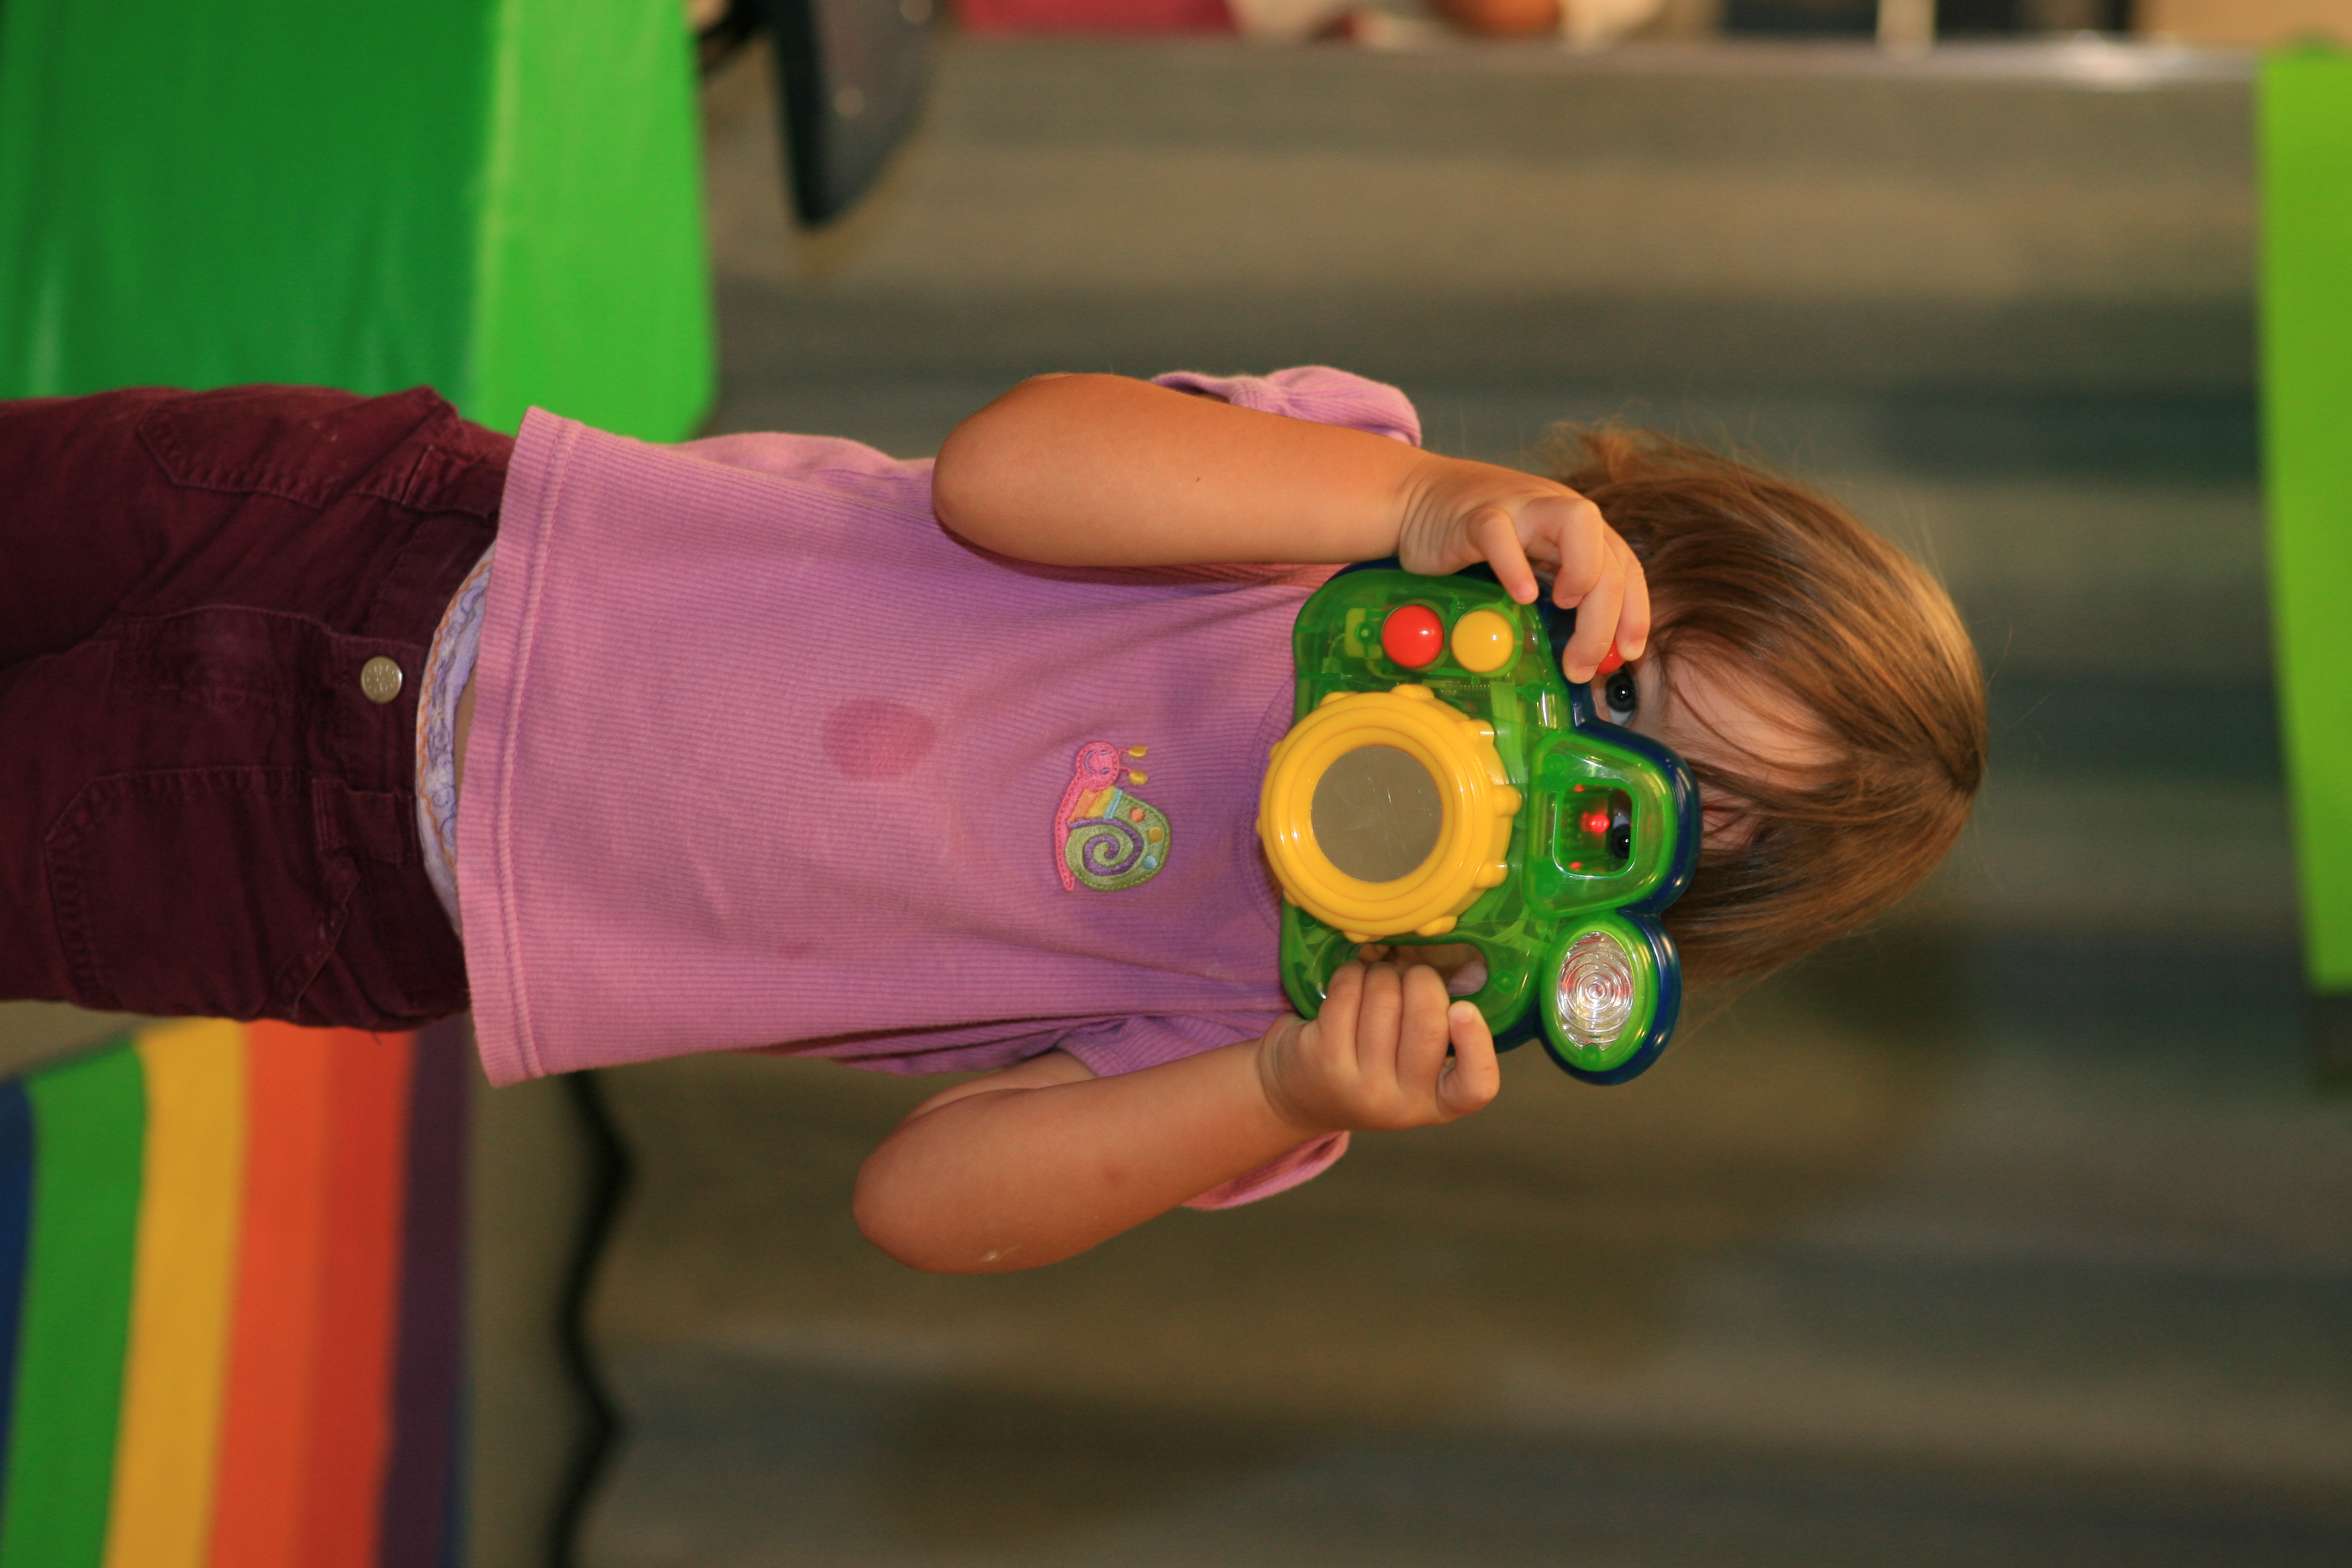 A little girl takes a picture using a toy camera